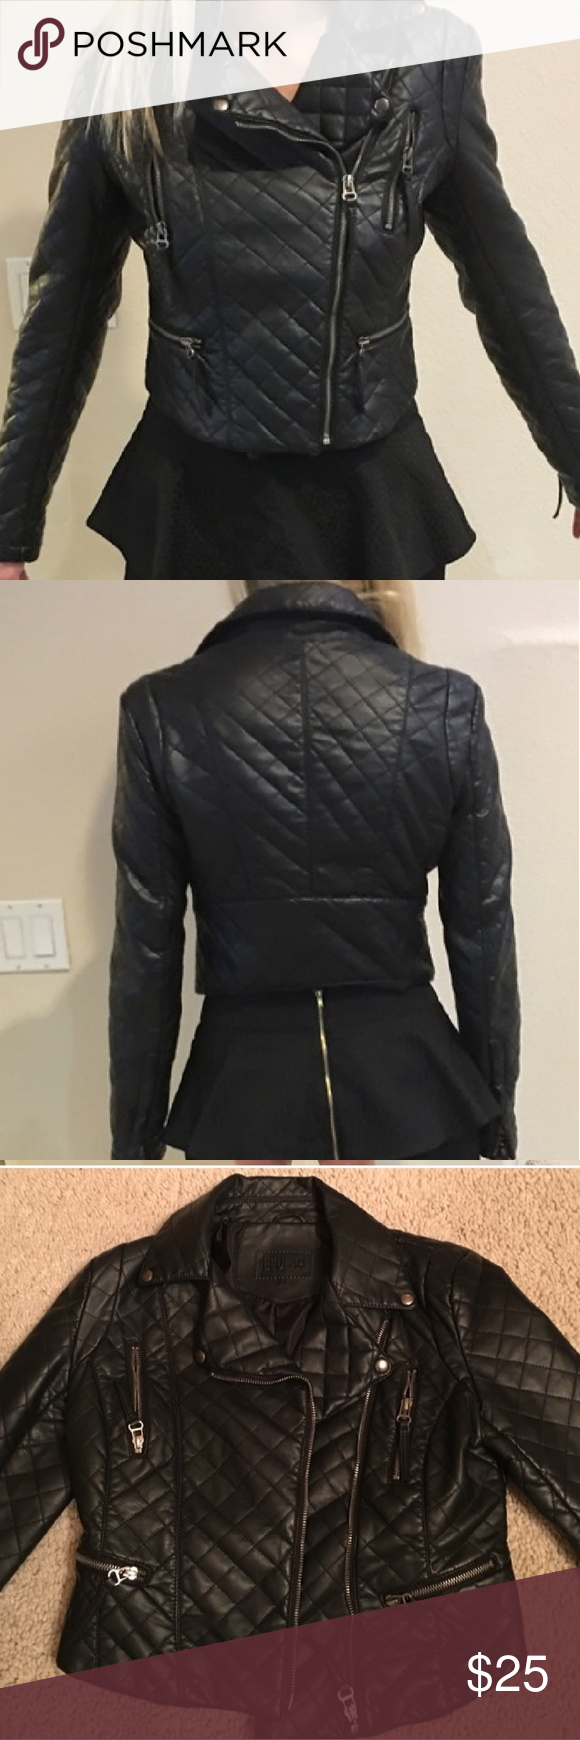 Cropped Quilted Vegan Leather Moto Jacket Vegan leather